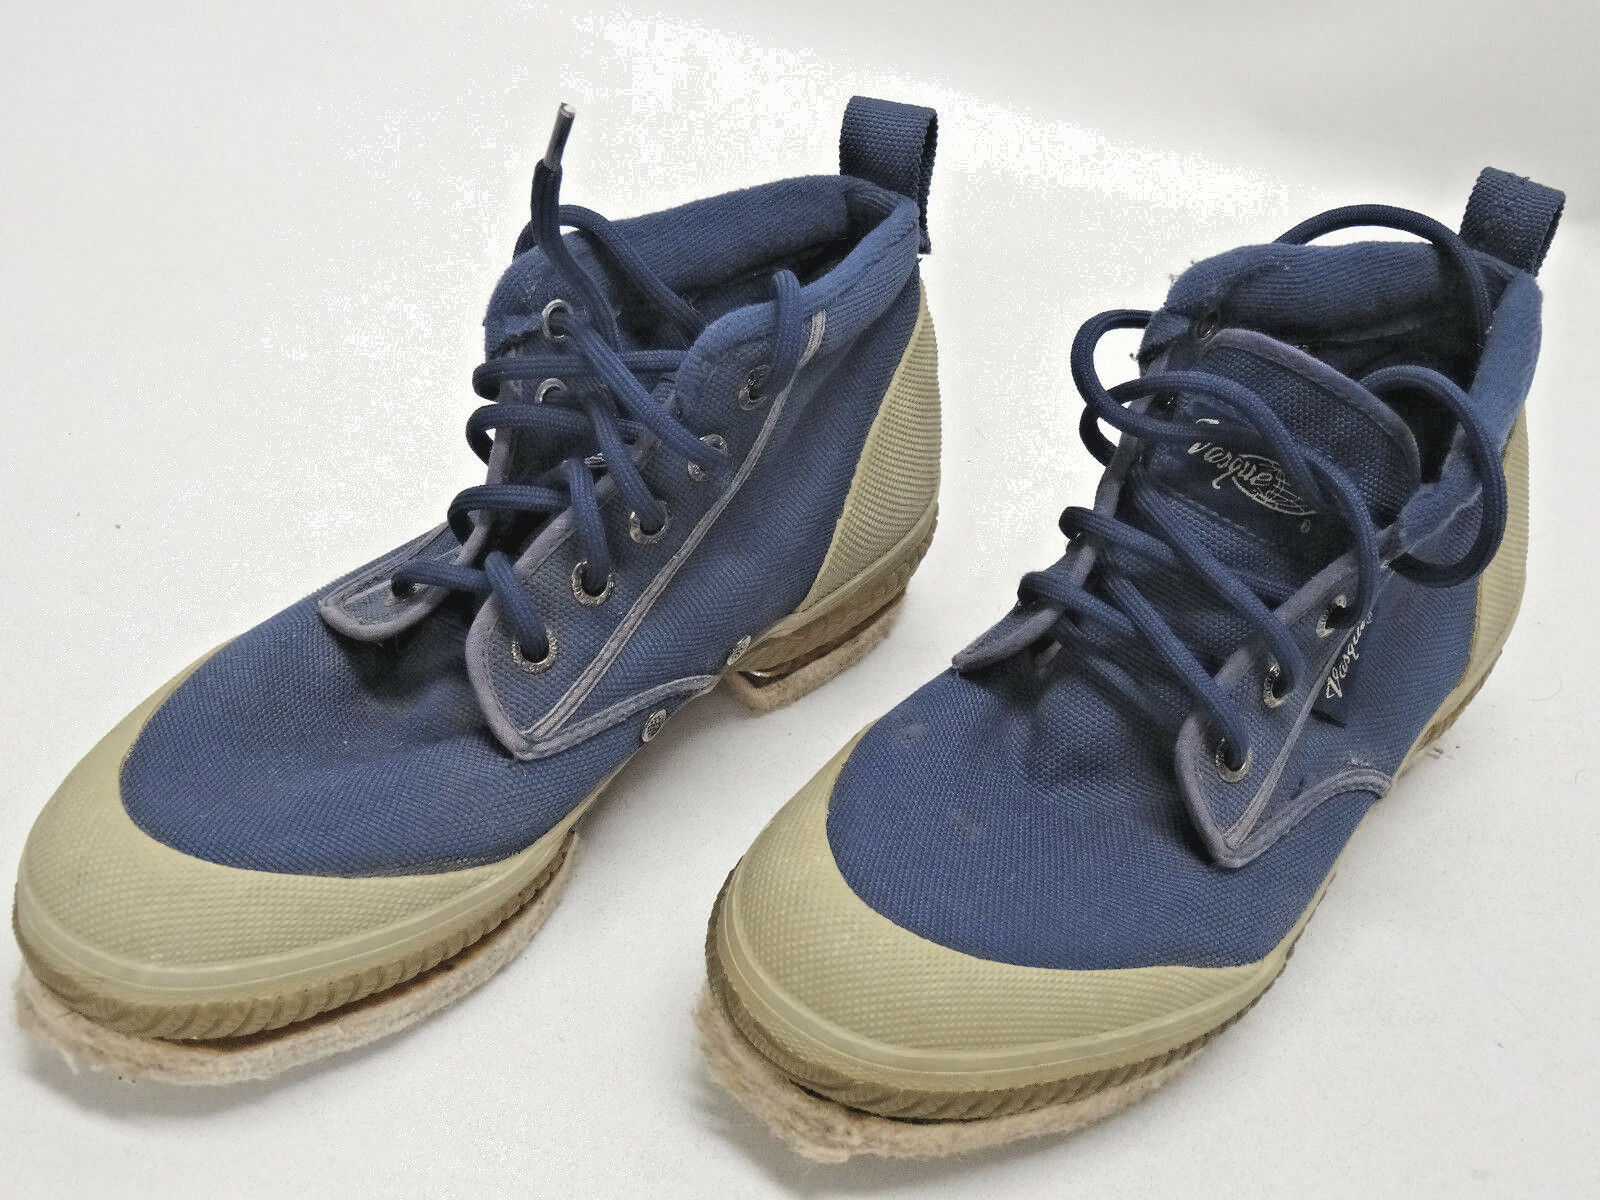 VASQUE FISHING WADING BOOTS W FELT, NAILS -MENS 8.5US 8UK 41-42EU IN EUC